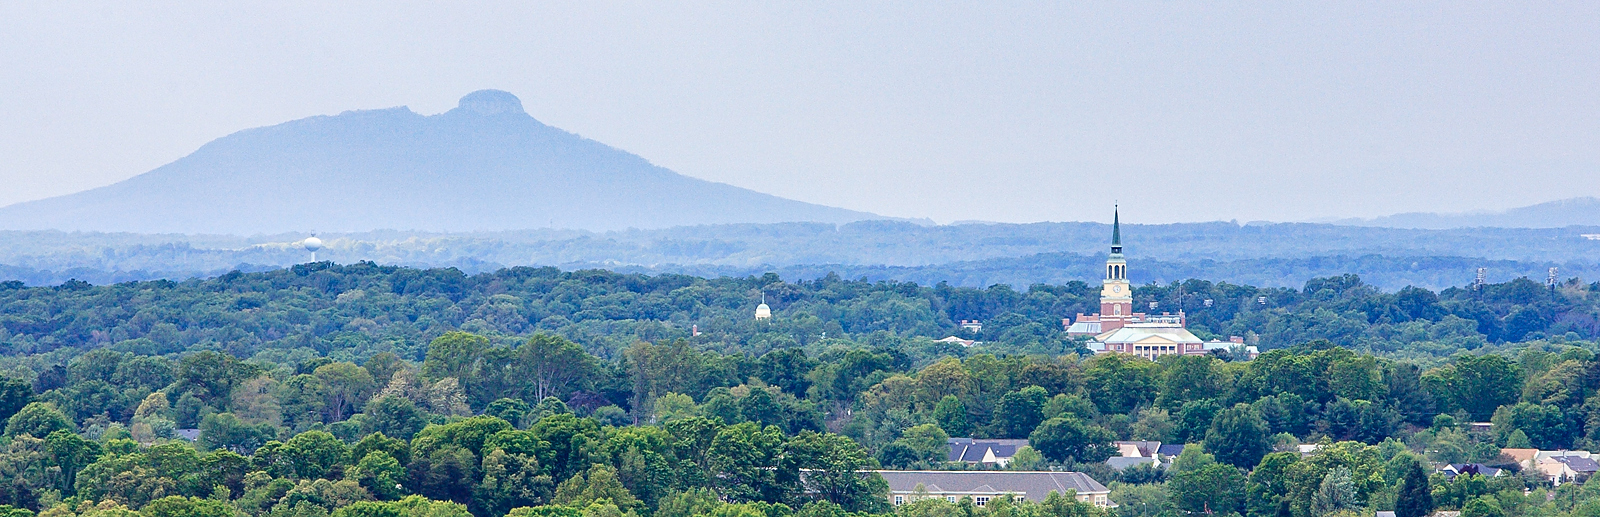 Aerial view of Wait Chapel and Pilot Mountain